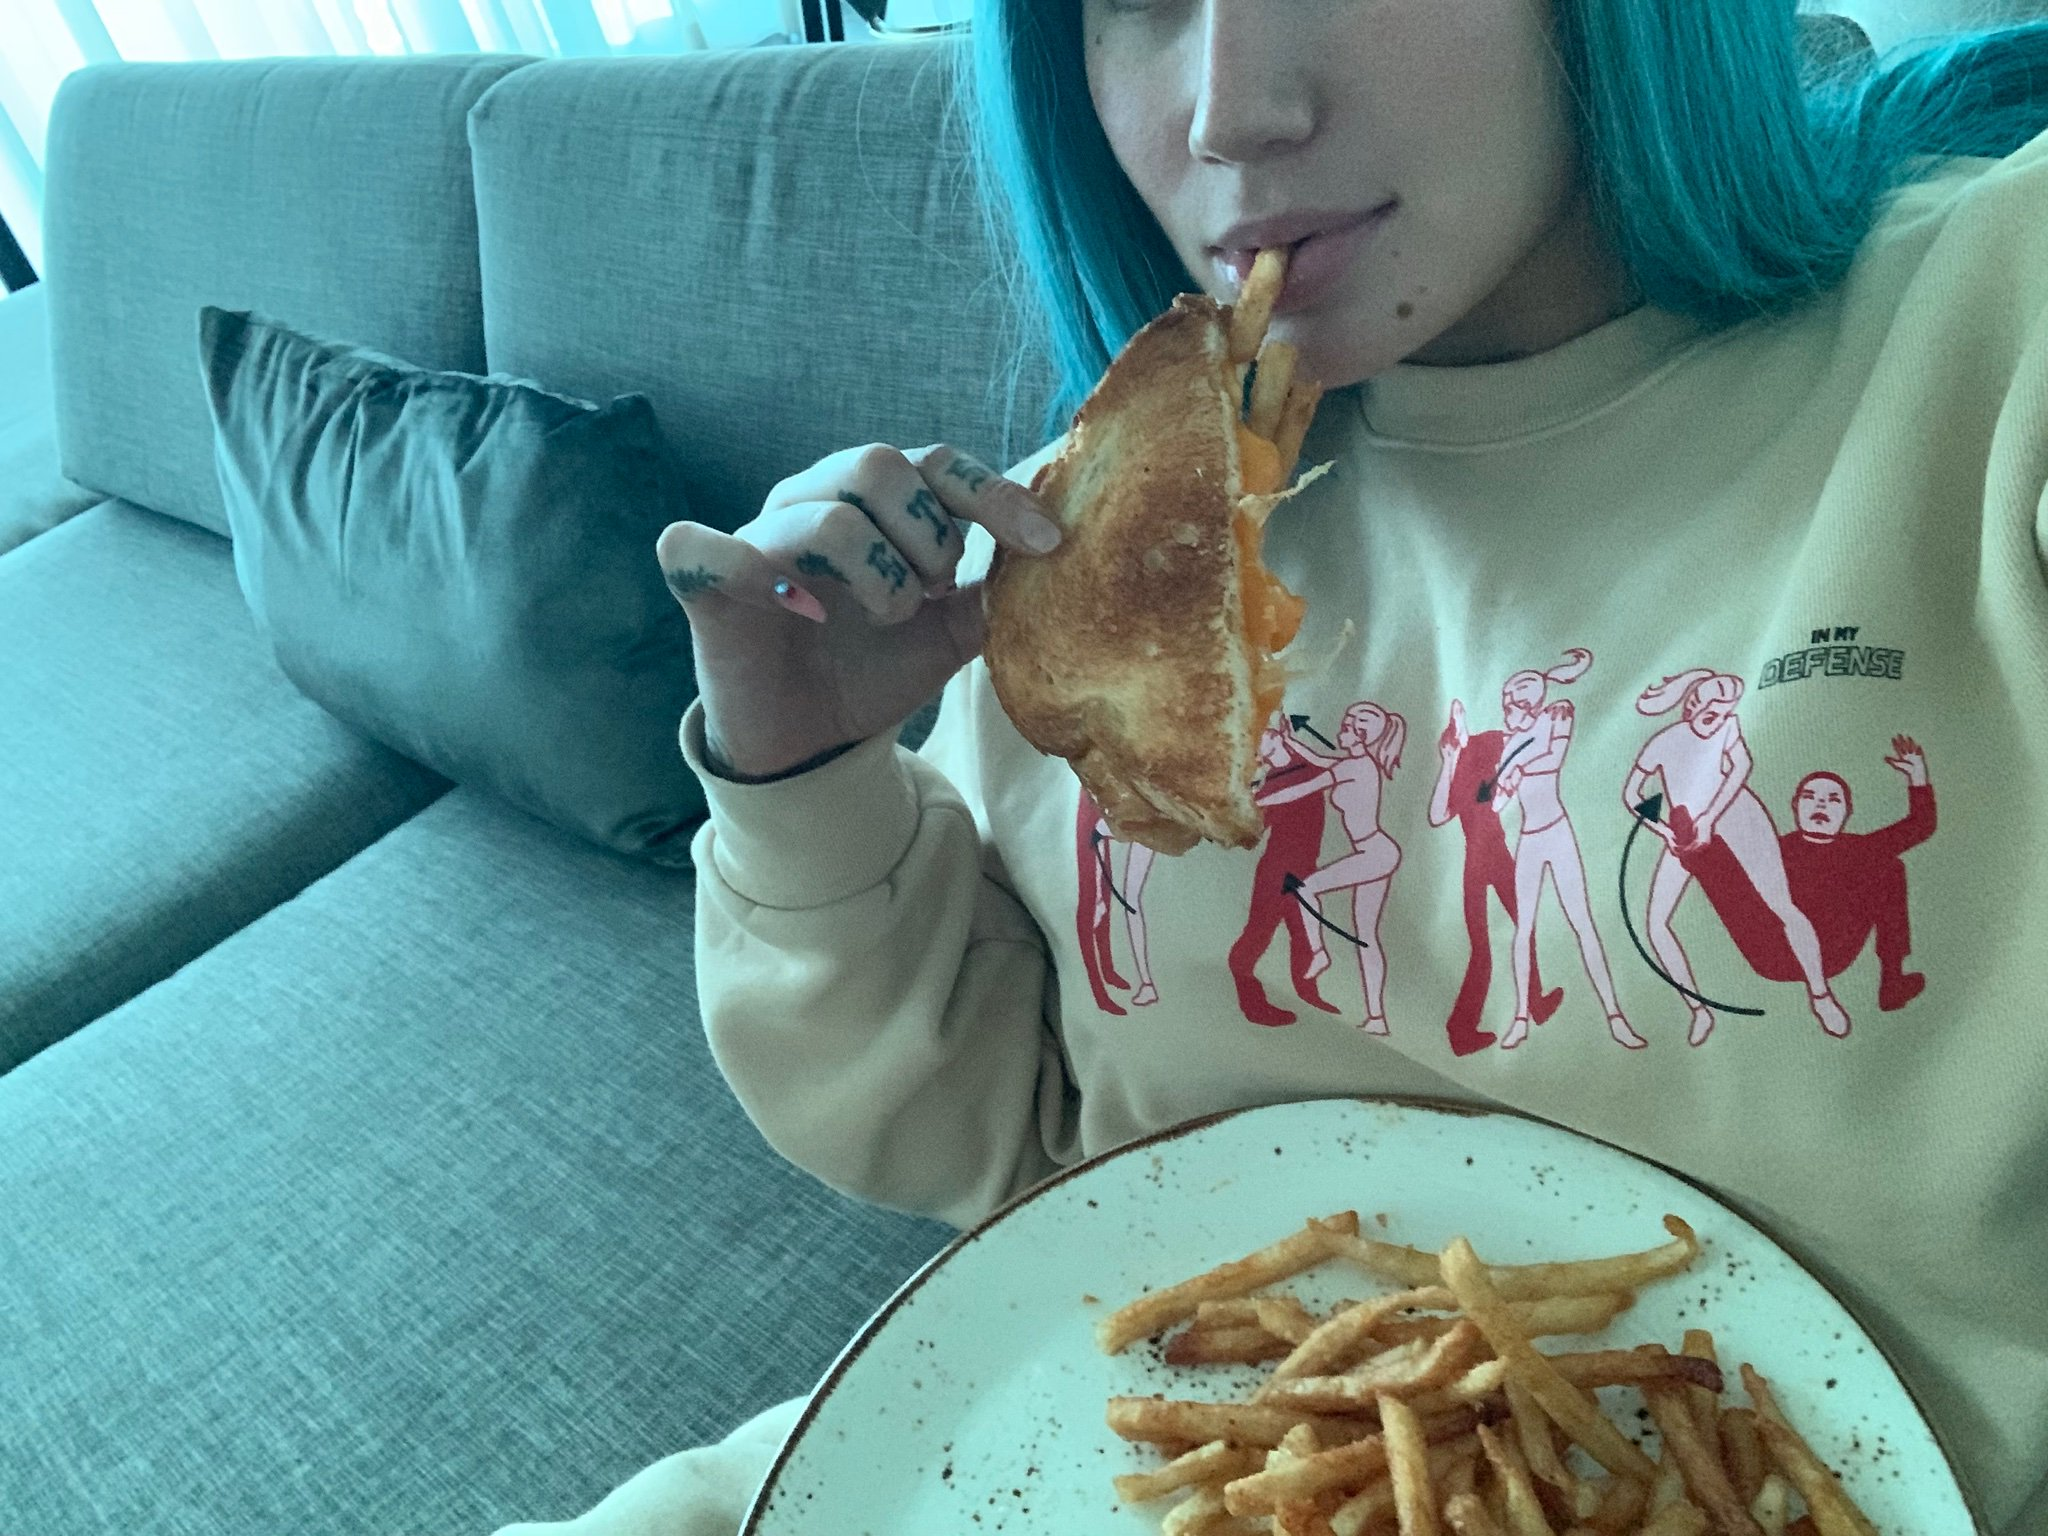 Iggy Azalea Isn#8217;t Happy About Paying $64 For A Grilled Cheese Sandwich 771223828